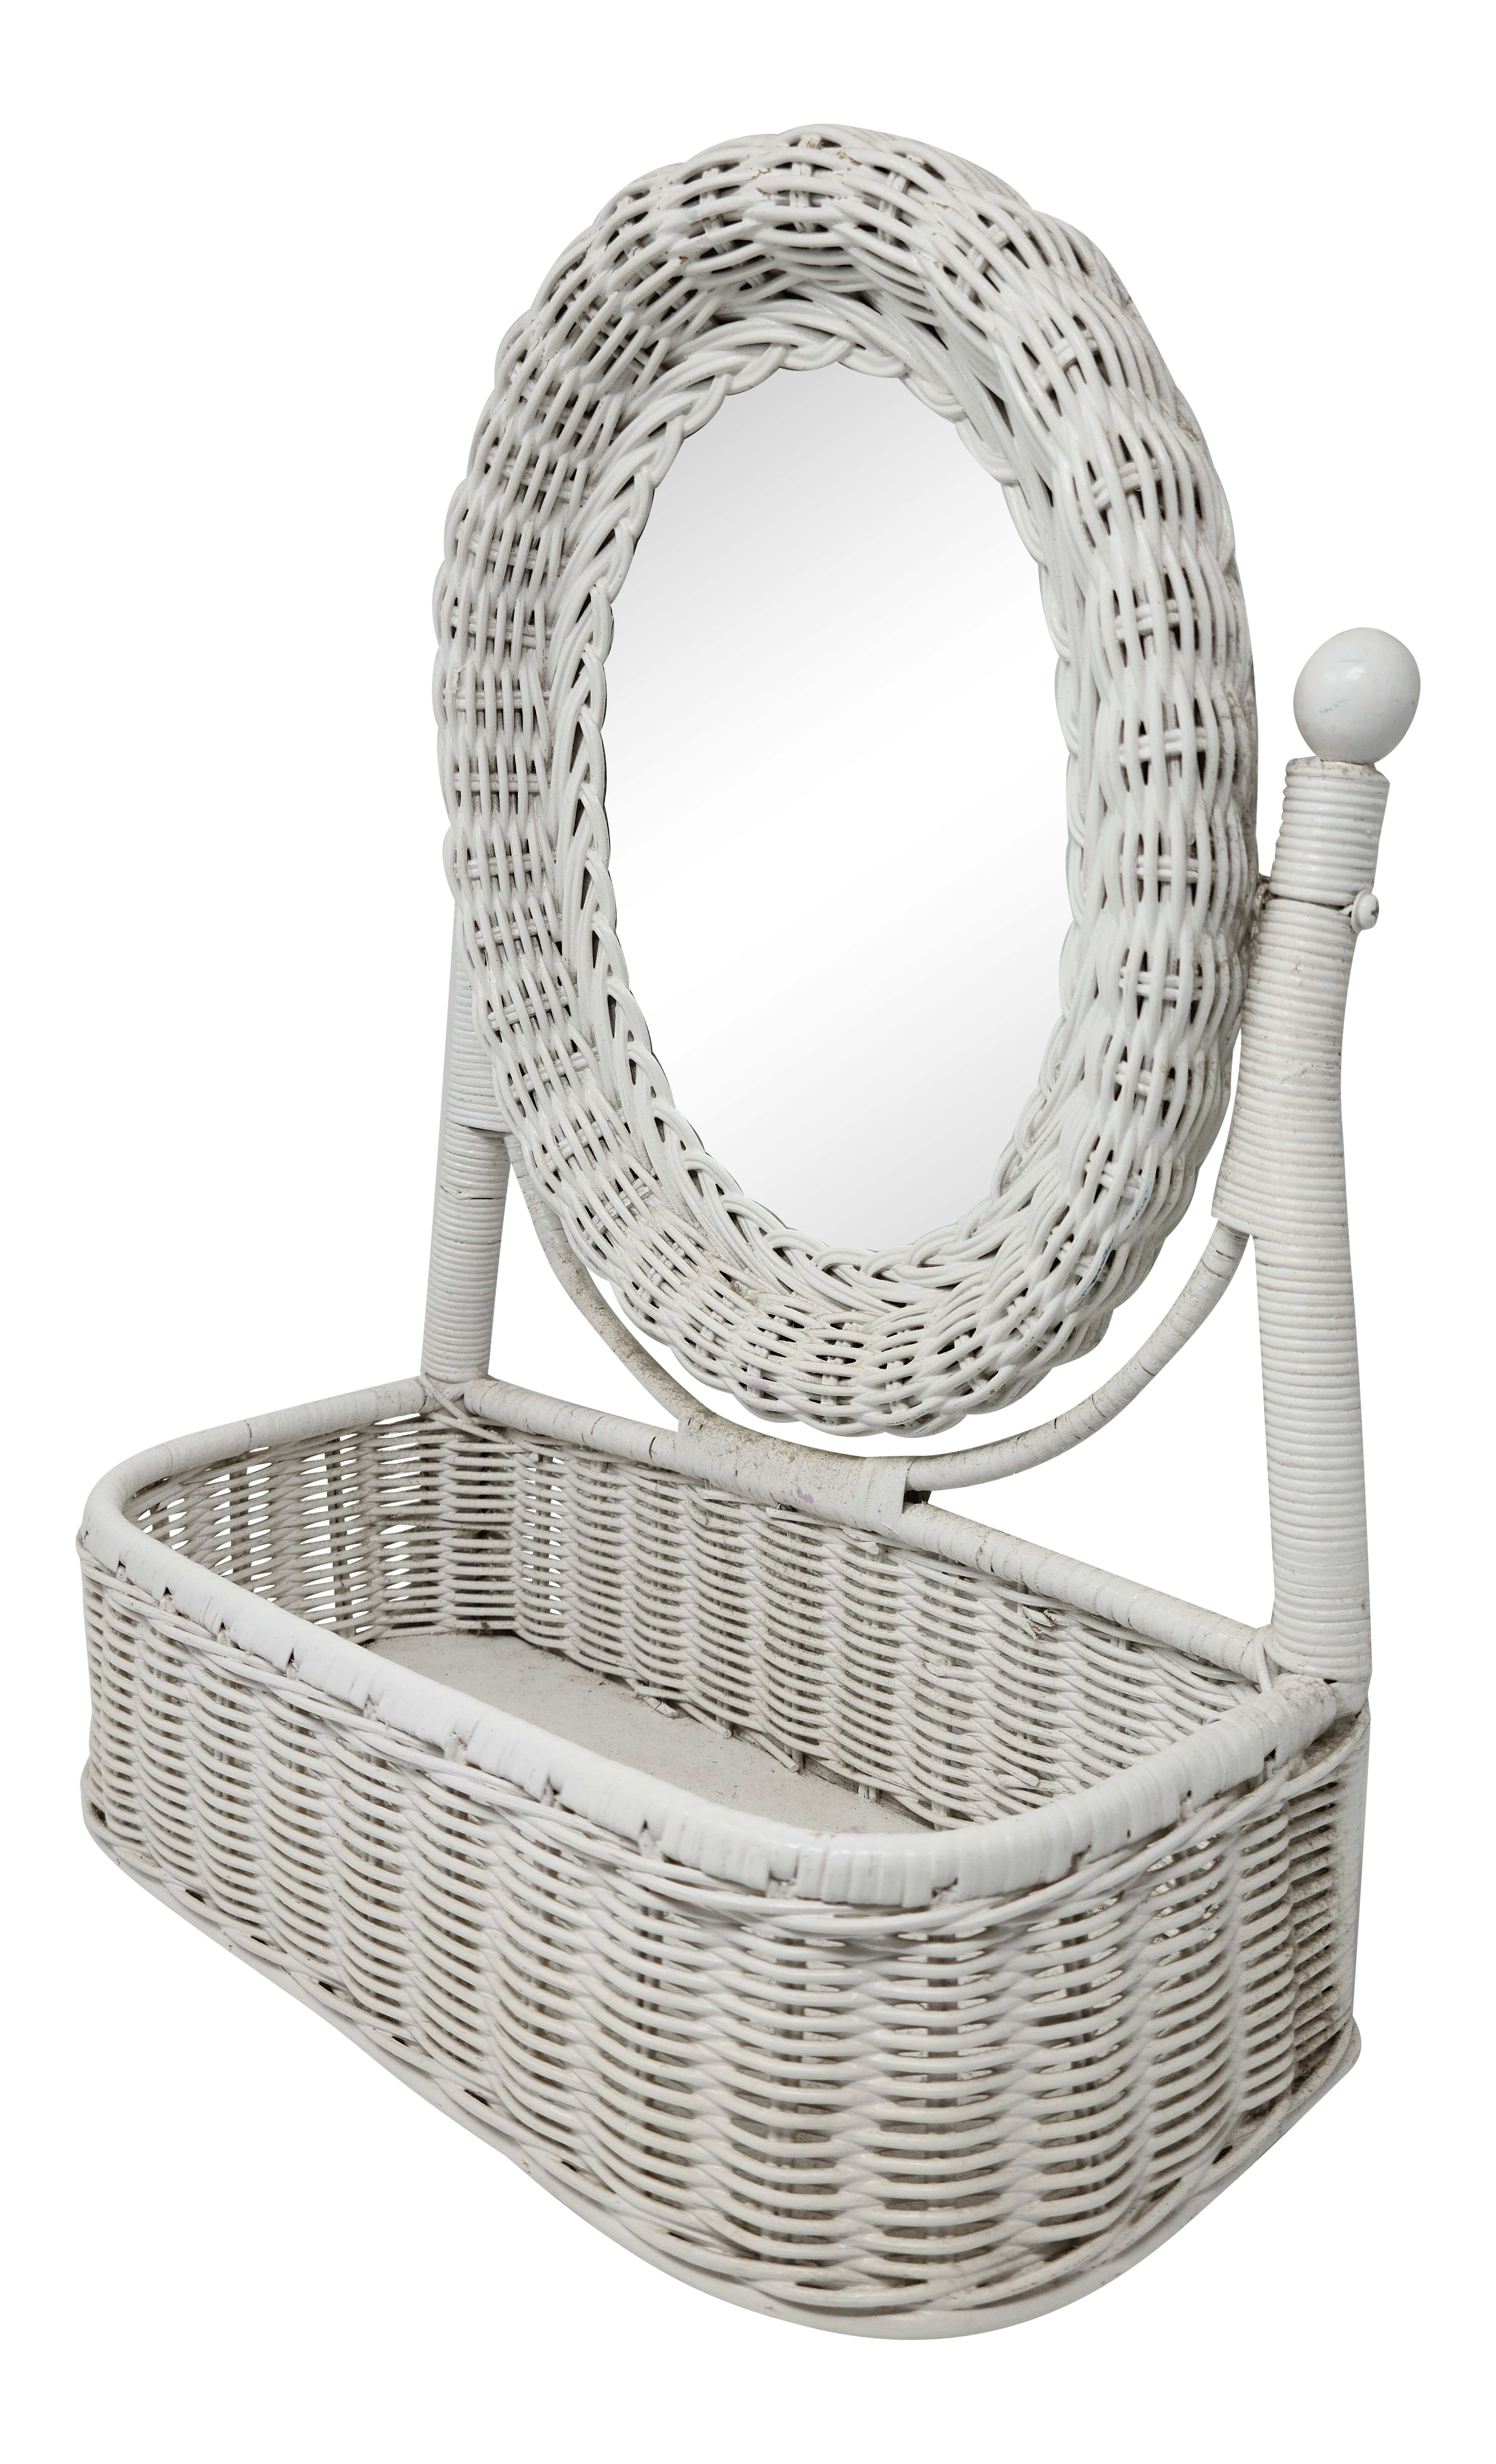 Vintage White Wicker Tabletop Vanity Mirror With Catchall Boho Chic Chairish